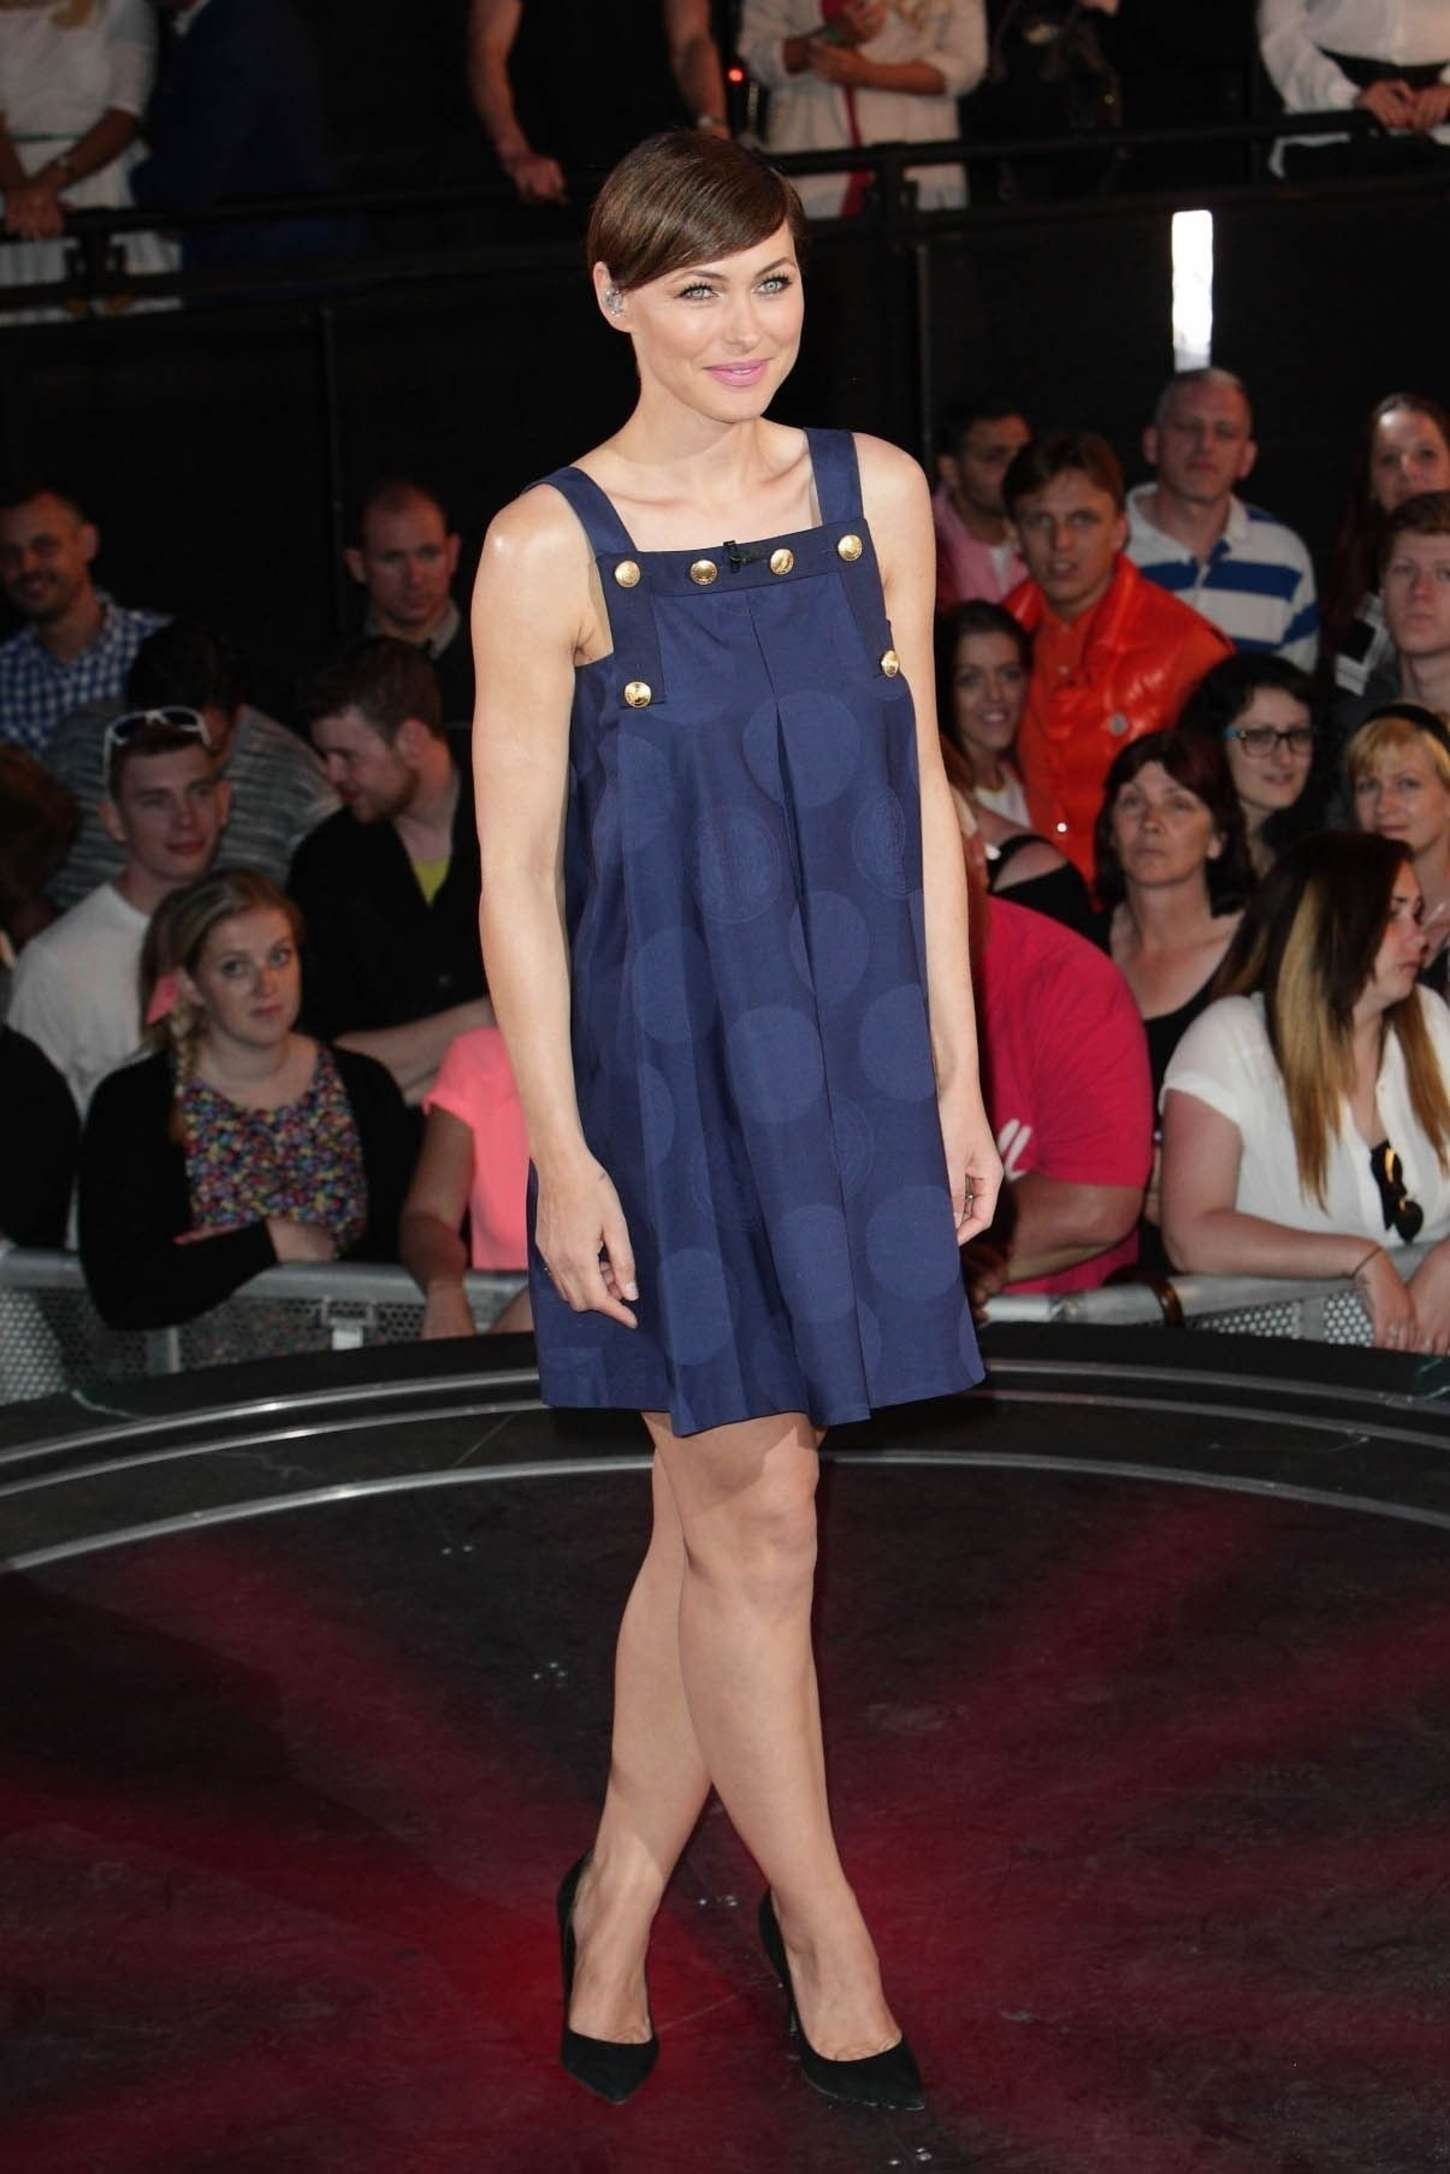 Emma Willis Big Brother UK Eviction Night in London